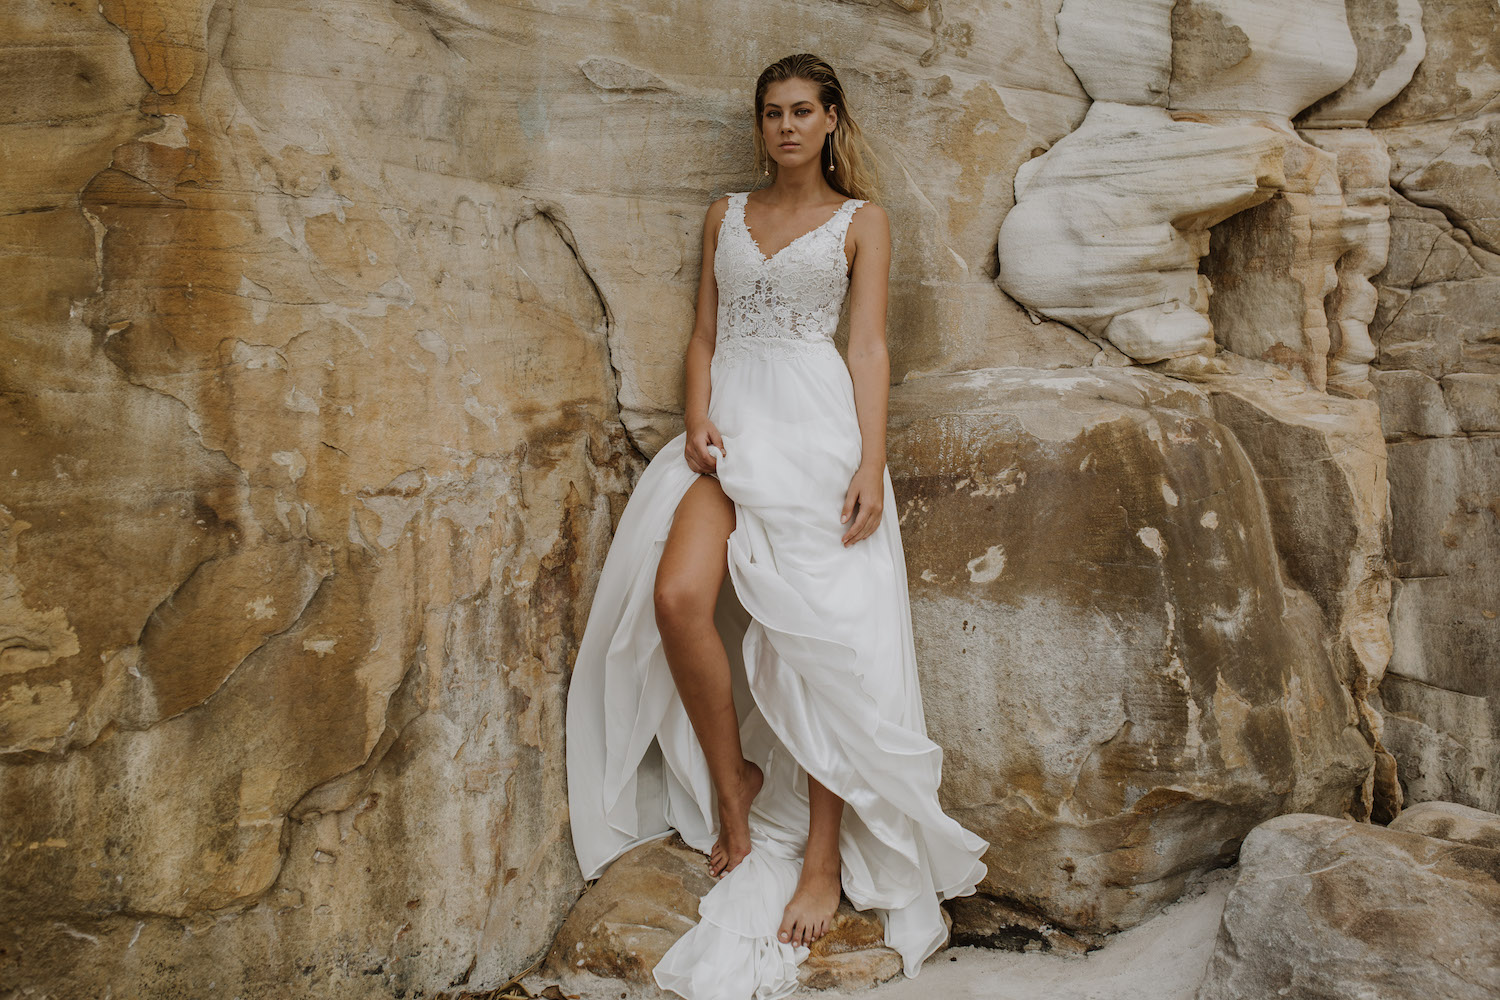 Snow Lotus wedding dress by Daisy Brides featured on LOVE FIND CO.